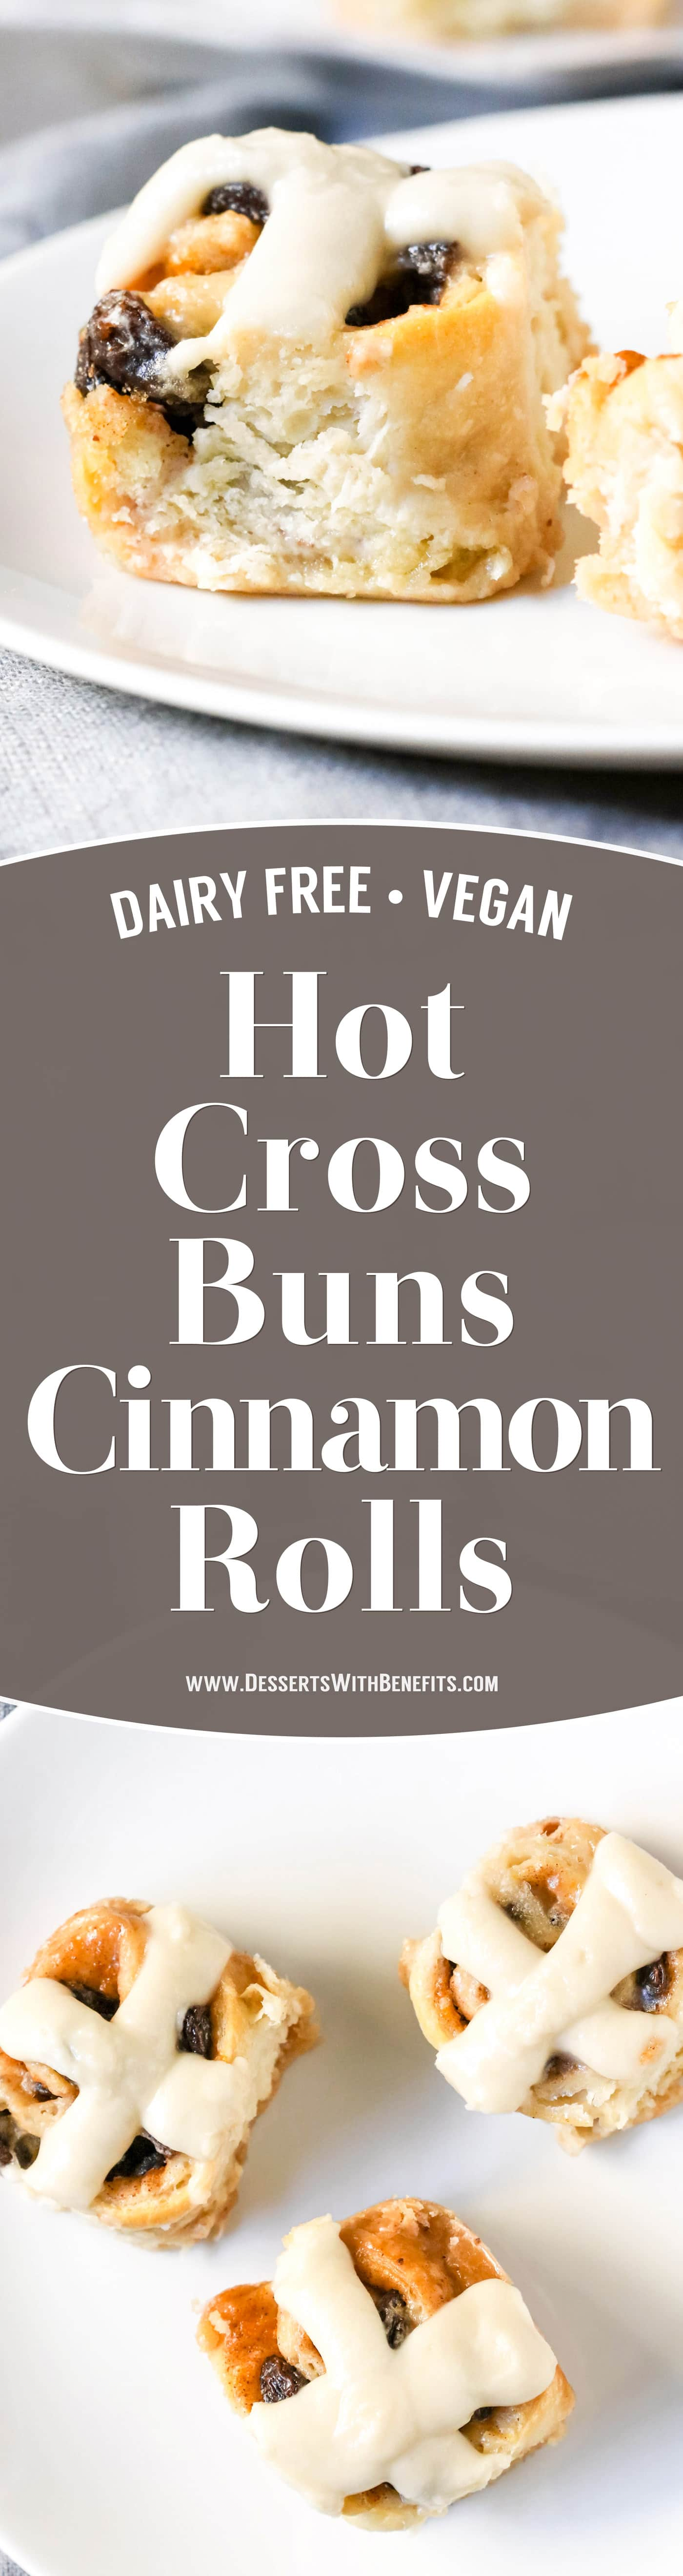 These Hot Cross Buns Cinnamon Rolls are like traditional Hot Cross Buns but BETTER! They're fluffy, sweeter than the original, and spiced with cinnamon and nutmeg. One bite and you'll have a hard time believing they're dairy free and vegan with no sugar added.